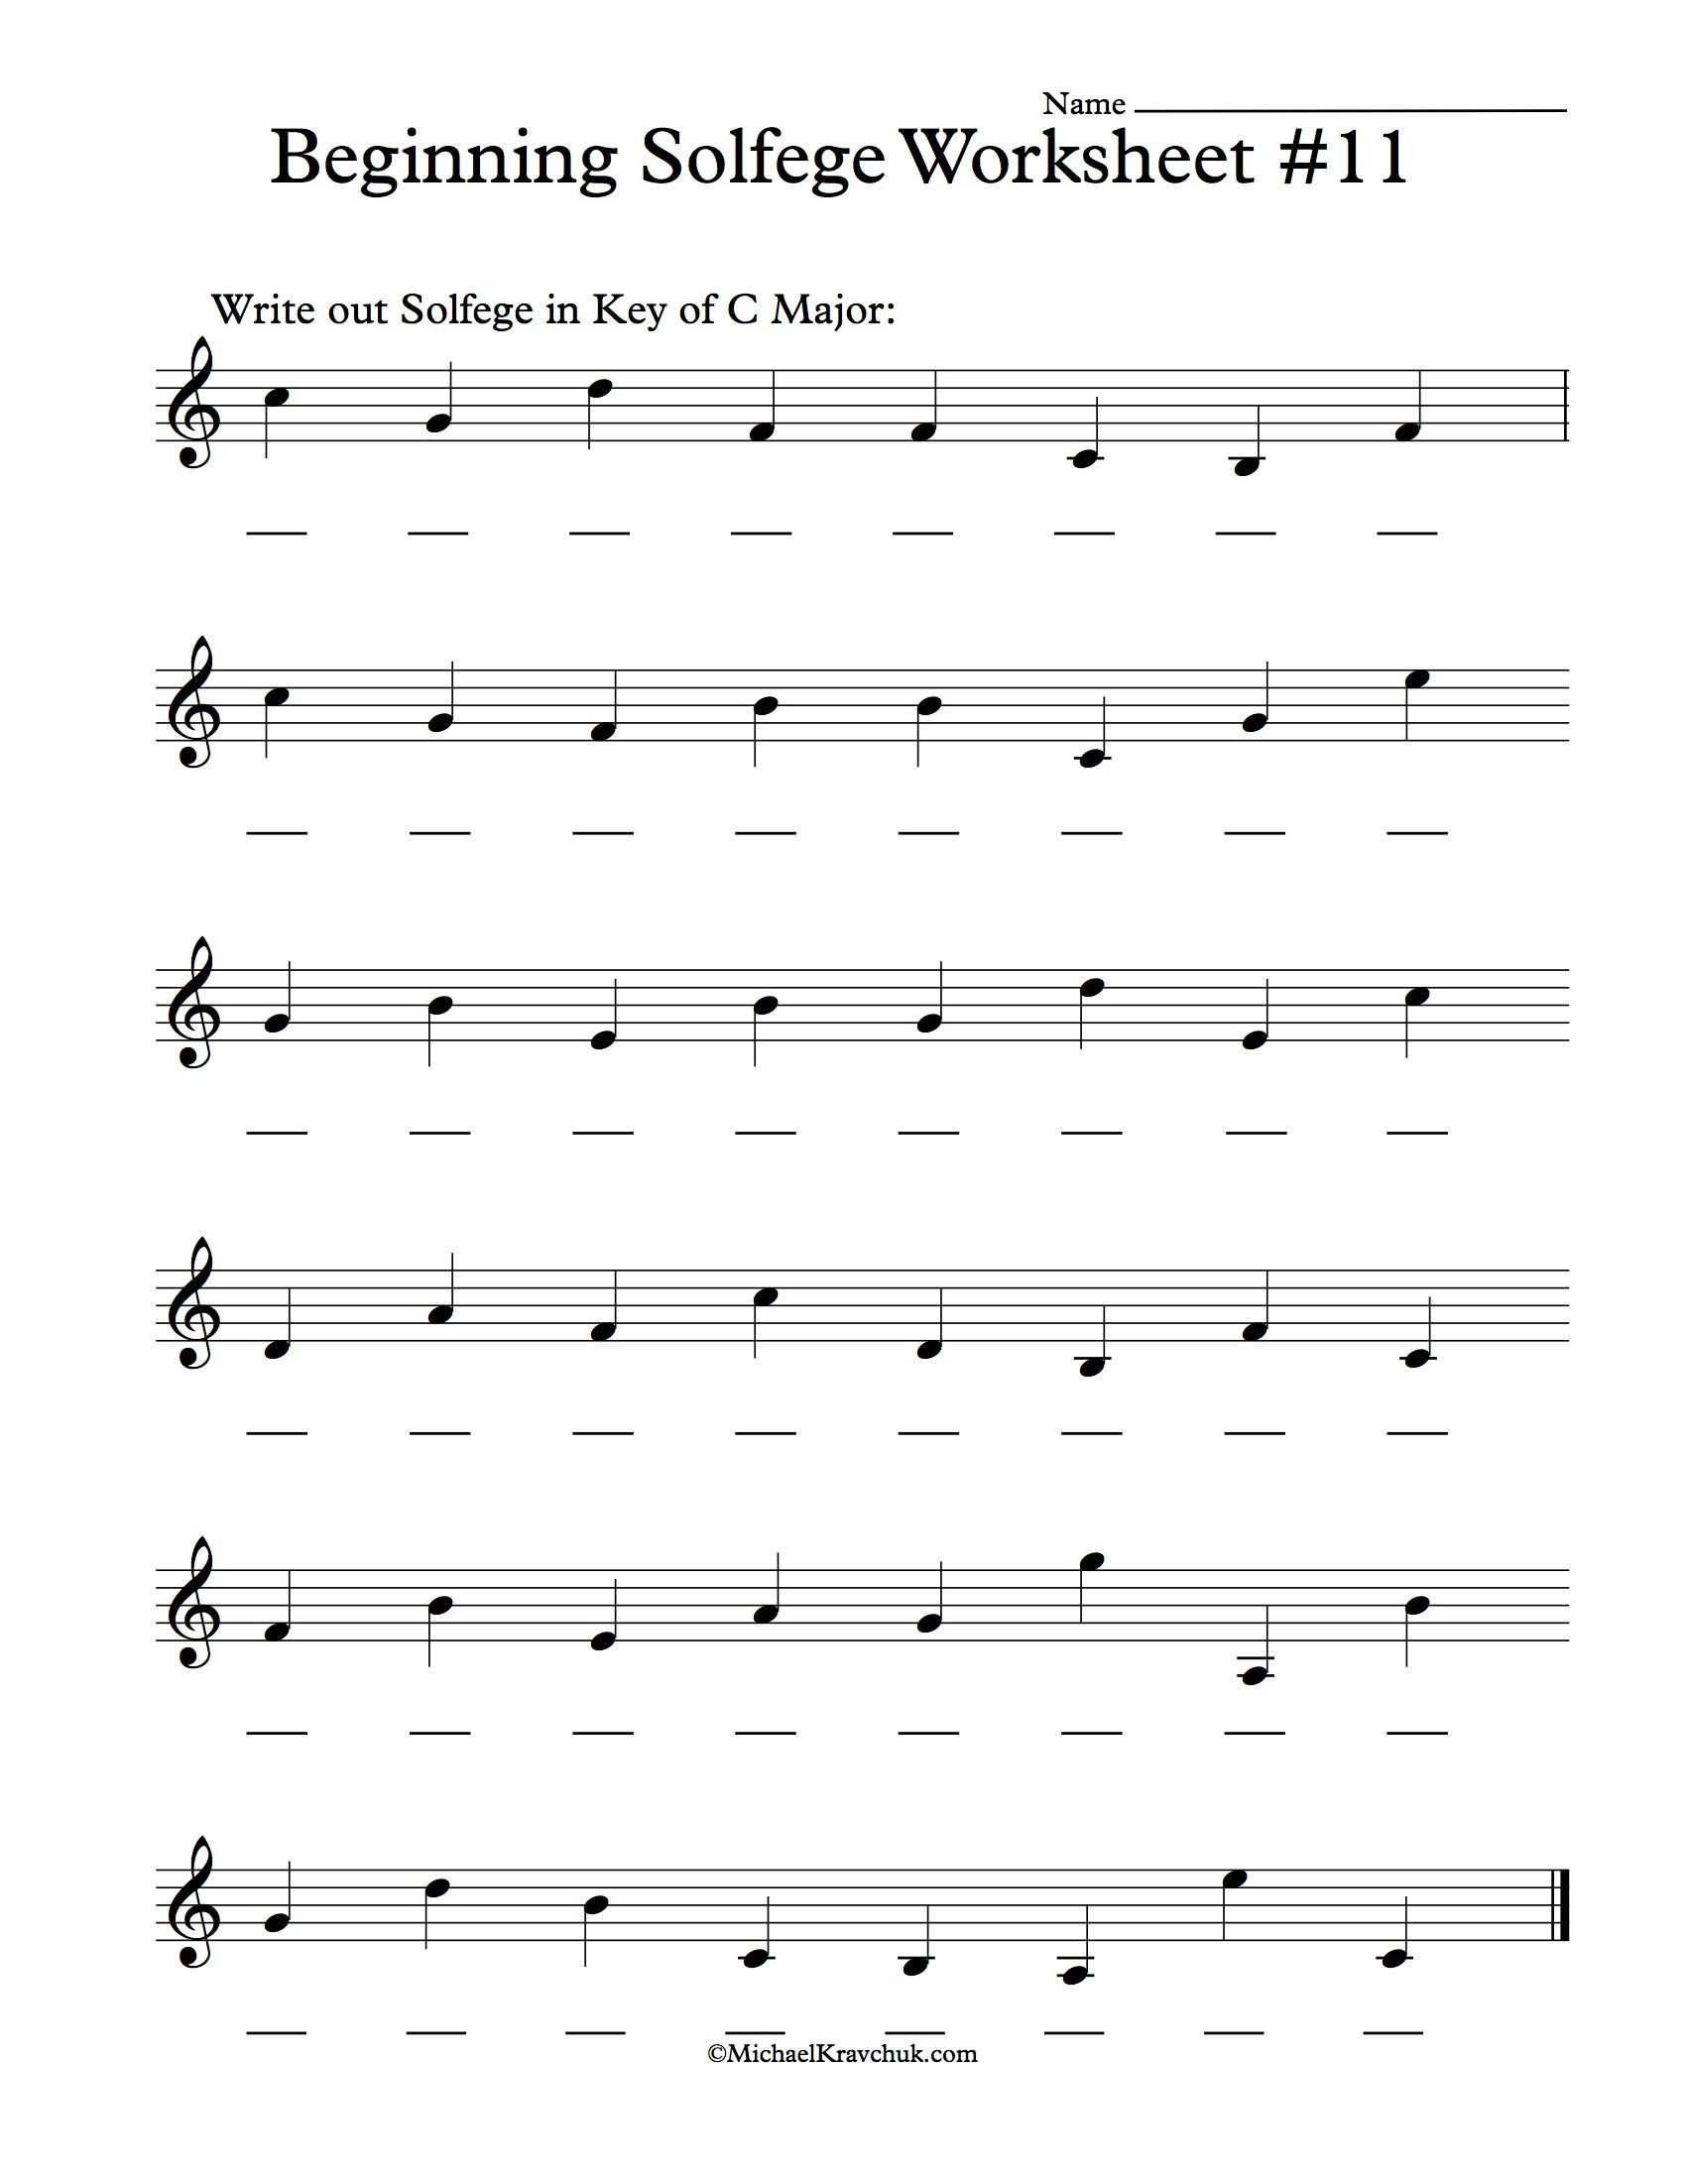 Beginner Piano Lesson Worksheets Beginning solfege Worksheet 11 for Classroom Instructions